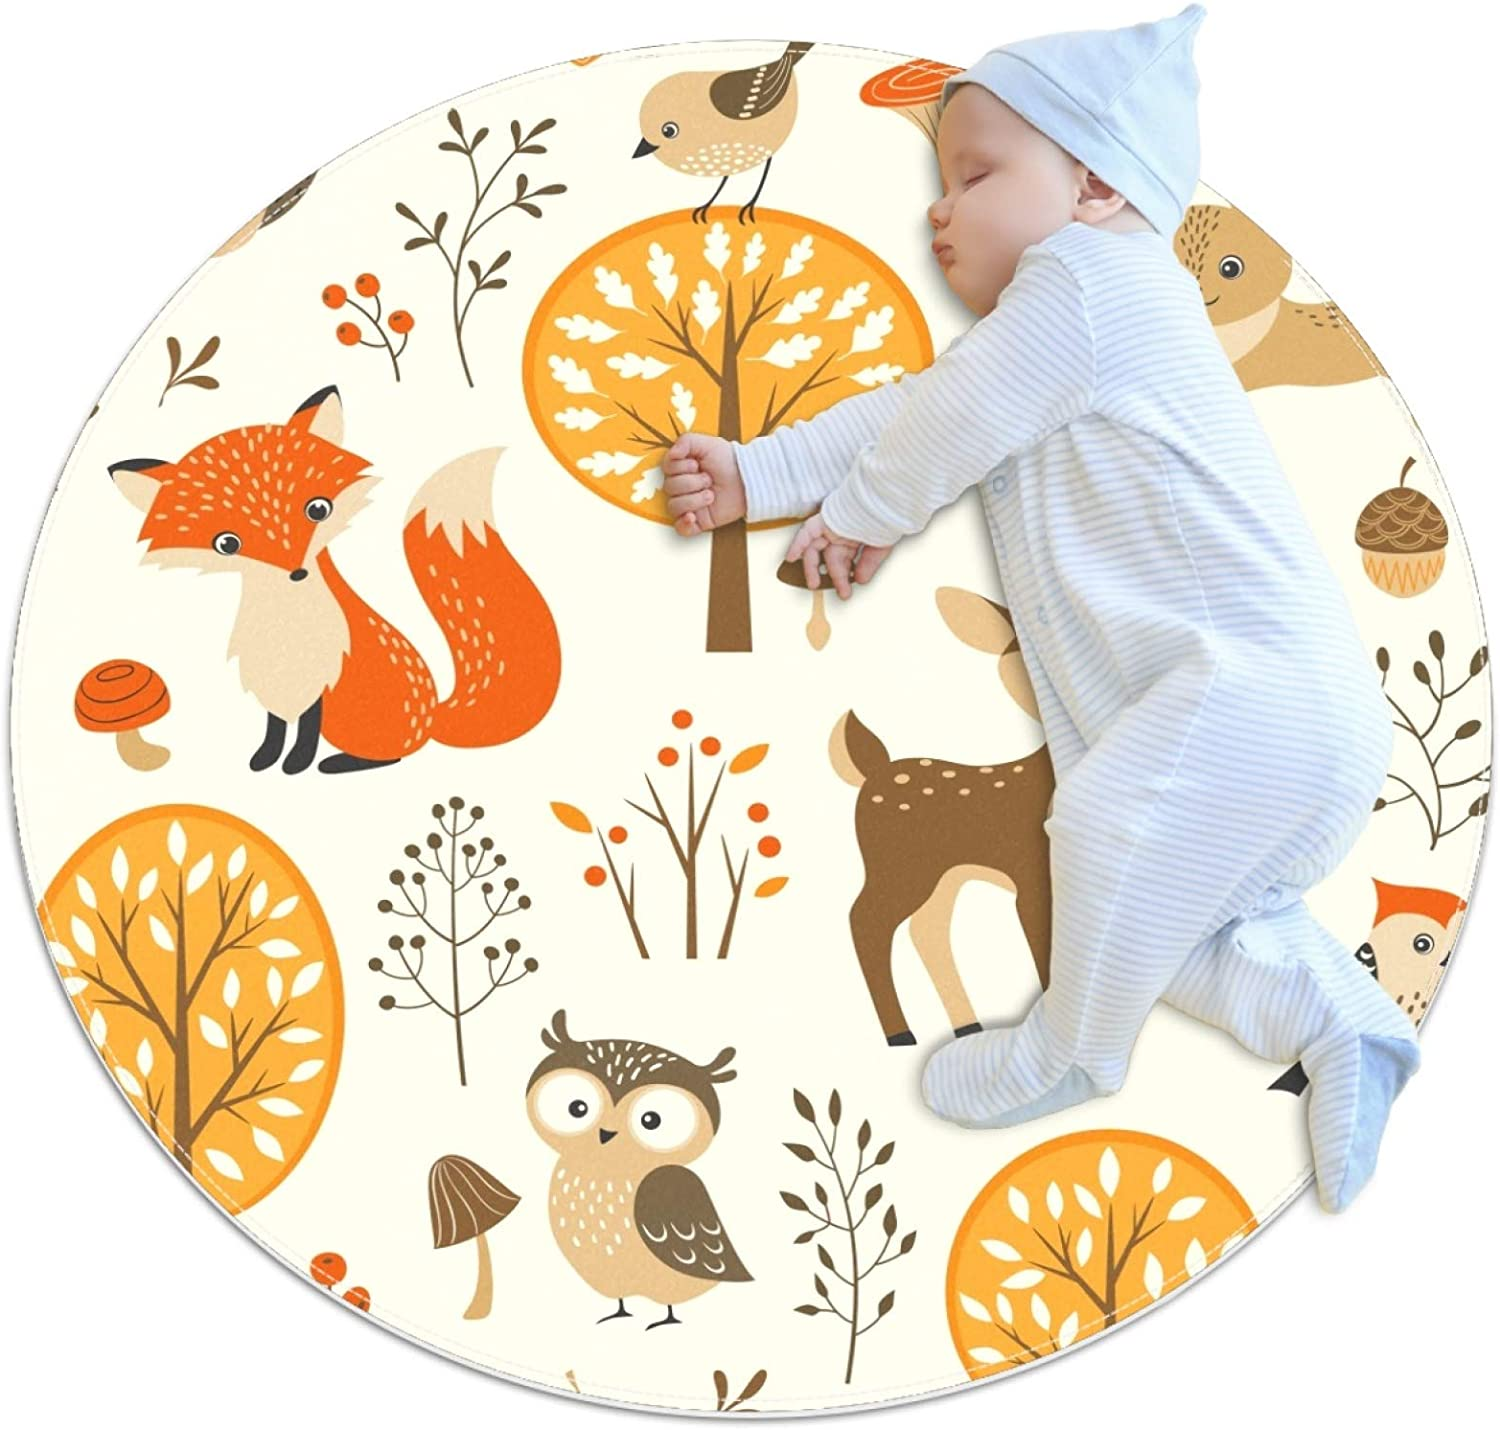 Round Soft Area Rugs for Kids Girls Room Cartoon elk Fox Cute Circle Nursery Rug for Kids Baby Girls Bedroom Living Room Home Decor Small Circular Carpet 3 ft 4 in